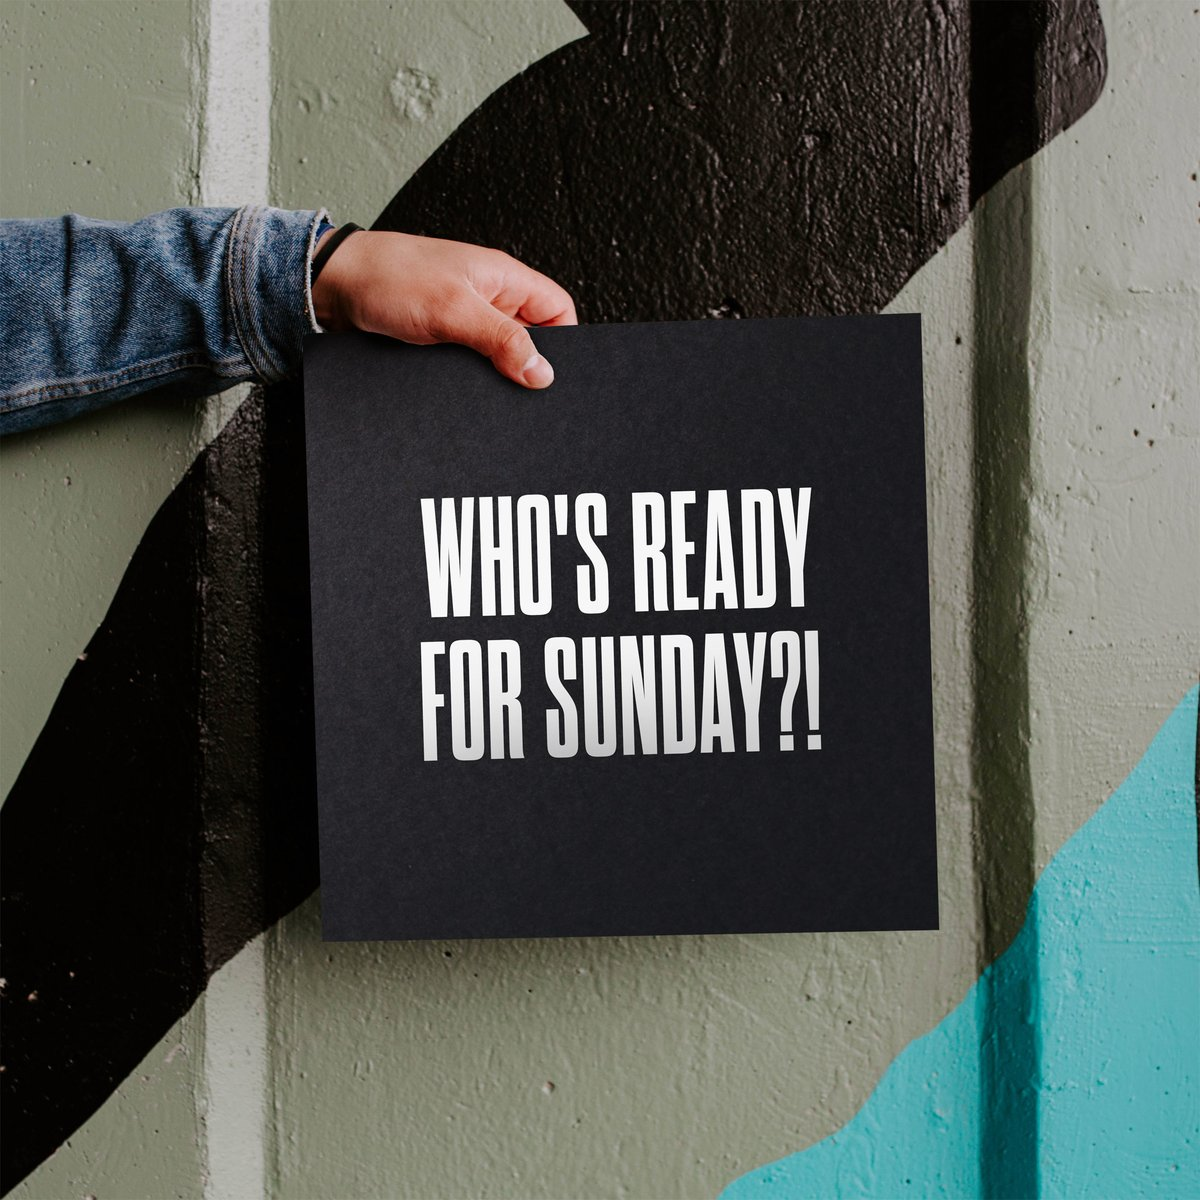 Sunday's our most favoritest day of the week! Come join us in person for outdoor worship on Sunday at 11am!  *Social distancing between households and face masks required.  #worship #sundayworship #sunday #weekend #itsfriday #friyay #community #church #eaglerock #eaglerockla